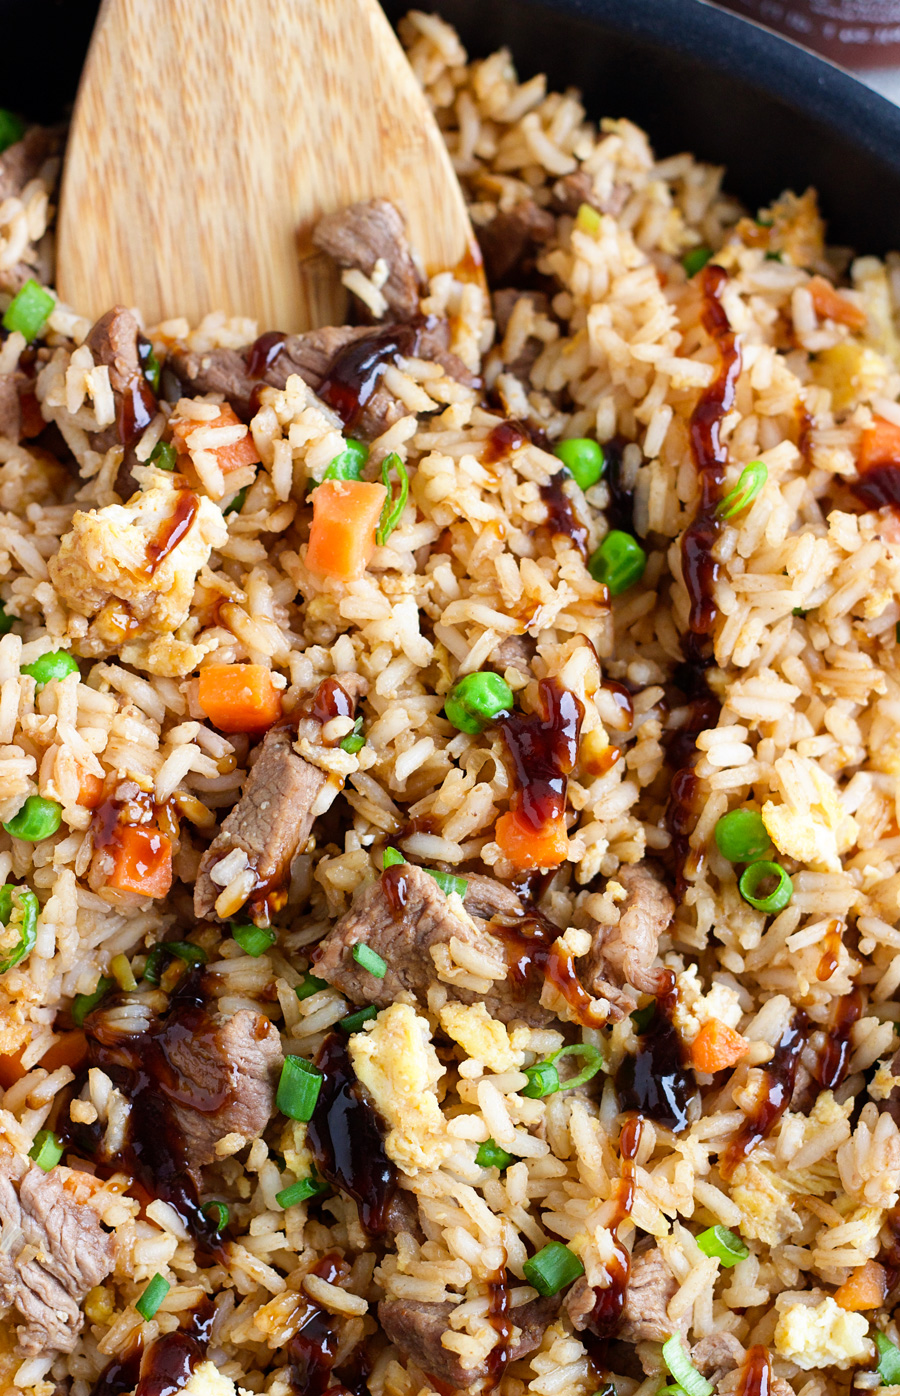 up close shot of a pan of steak fried rice with a wooden spoon in the pan